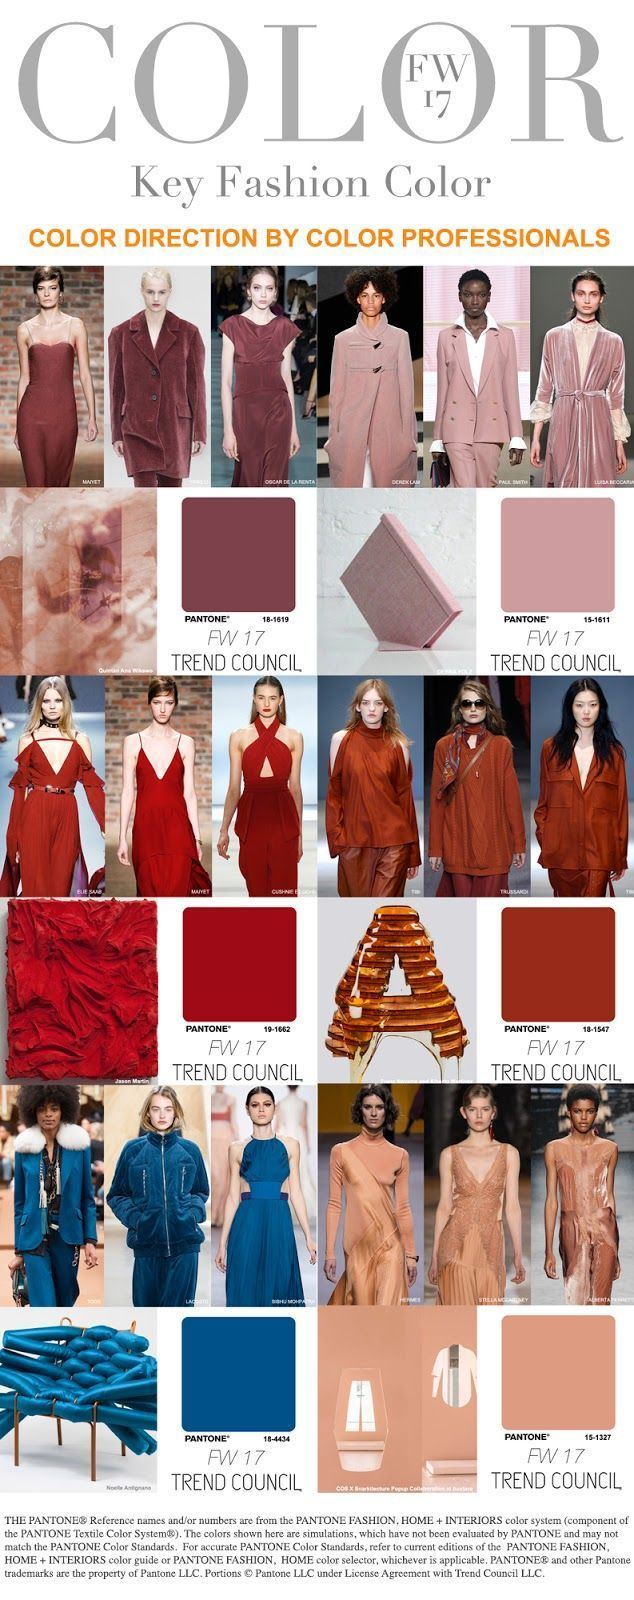 TRENDS // TREND COUNCIL - COLORS . FW 2017